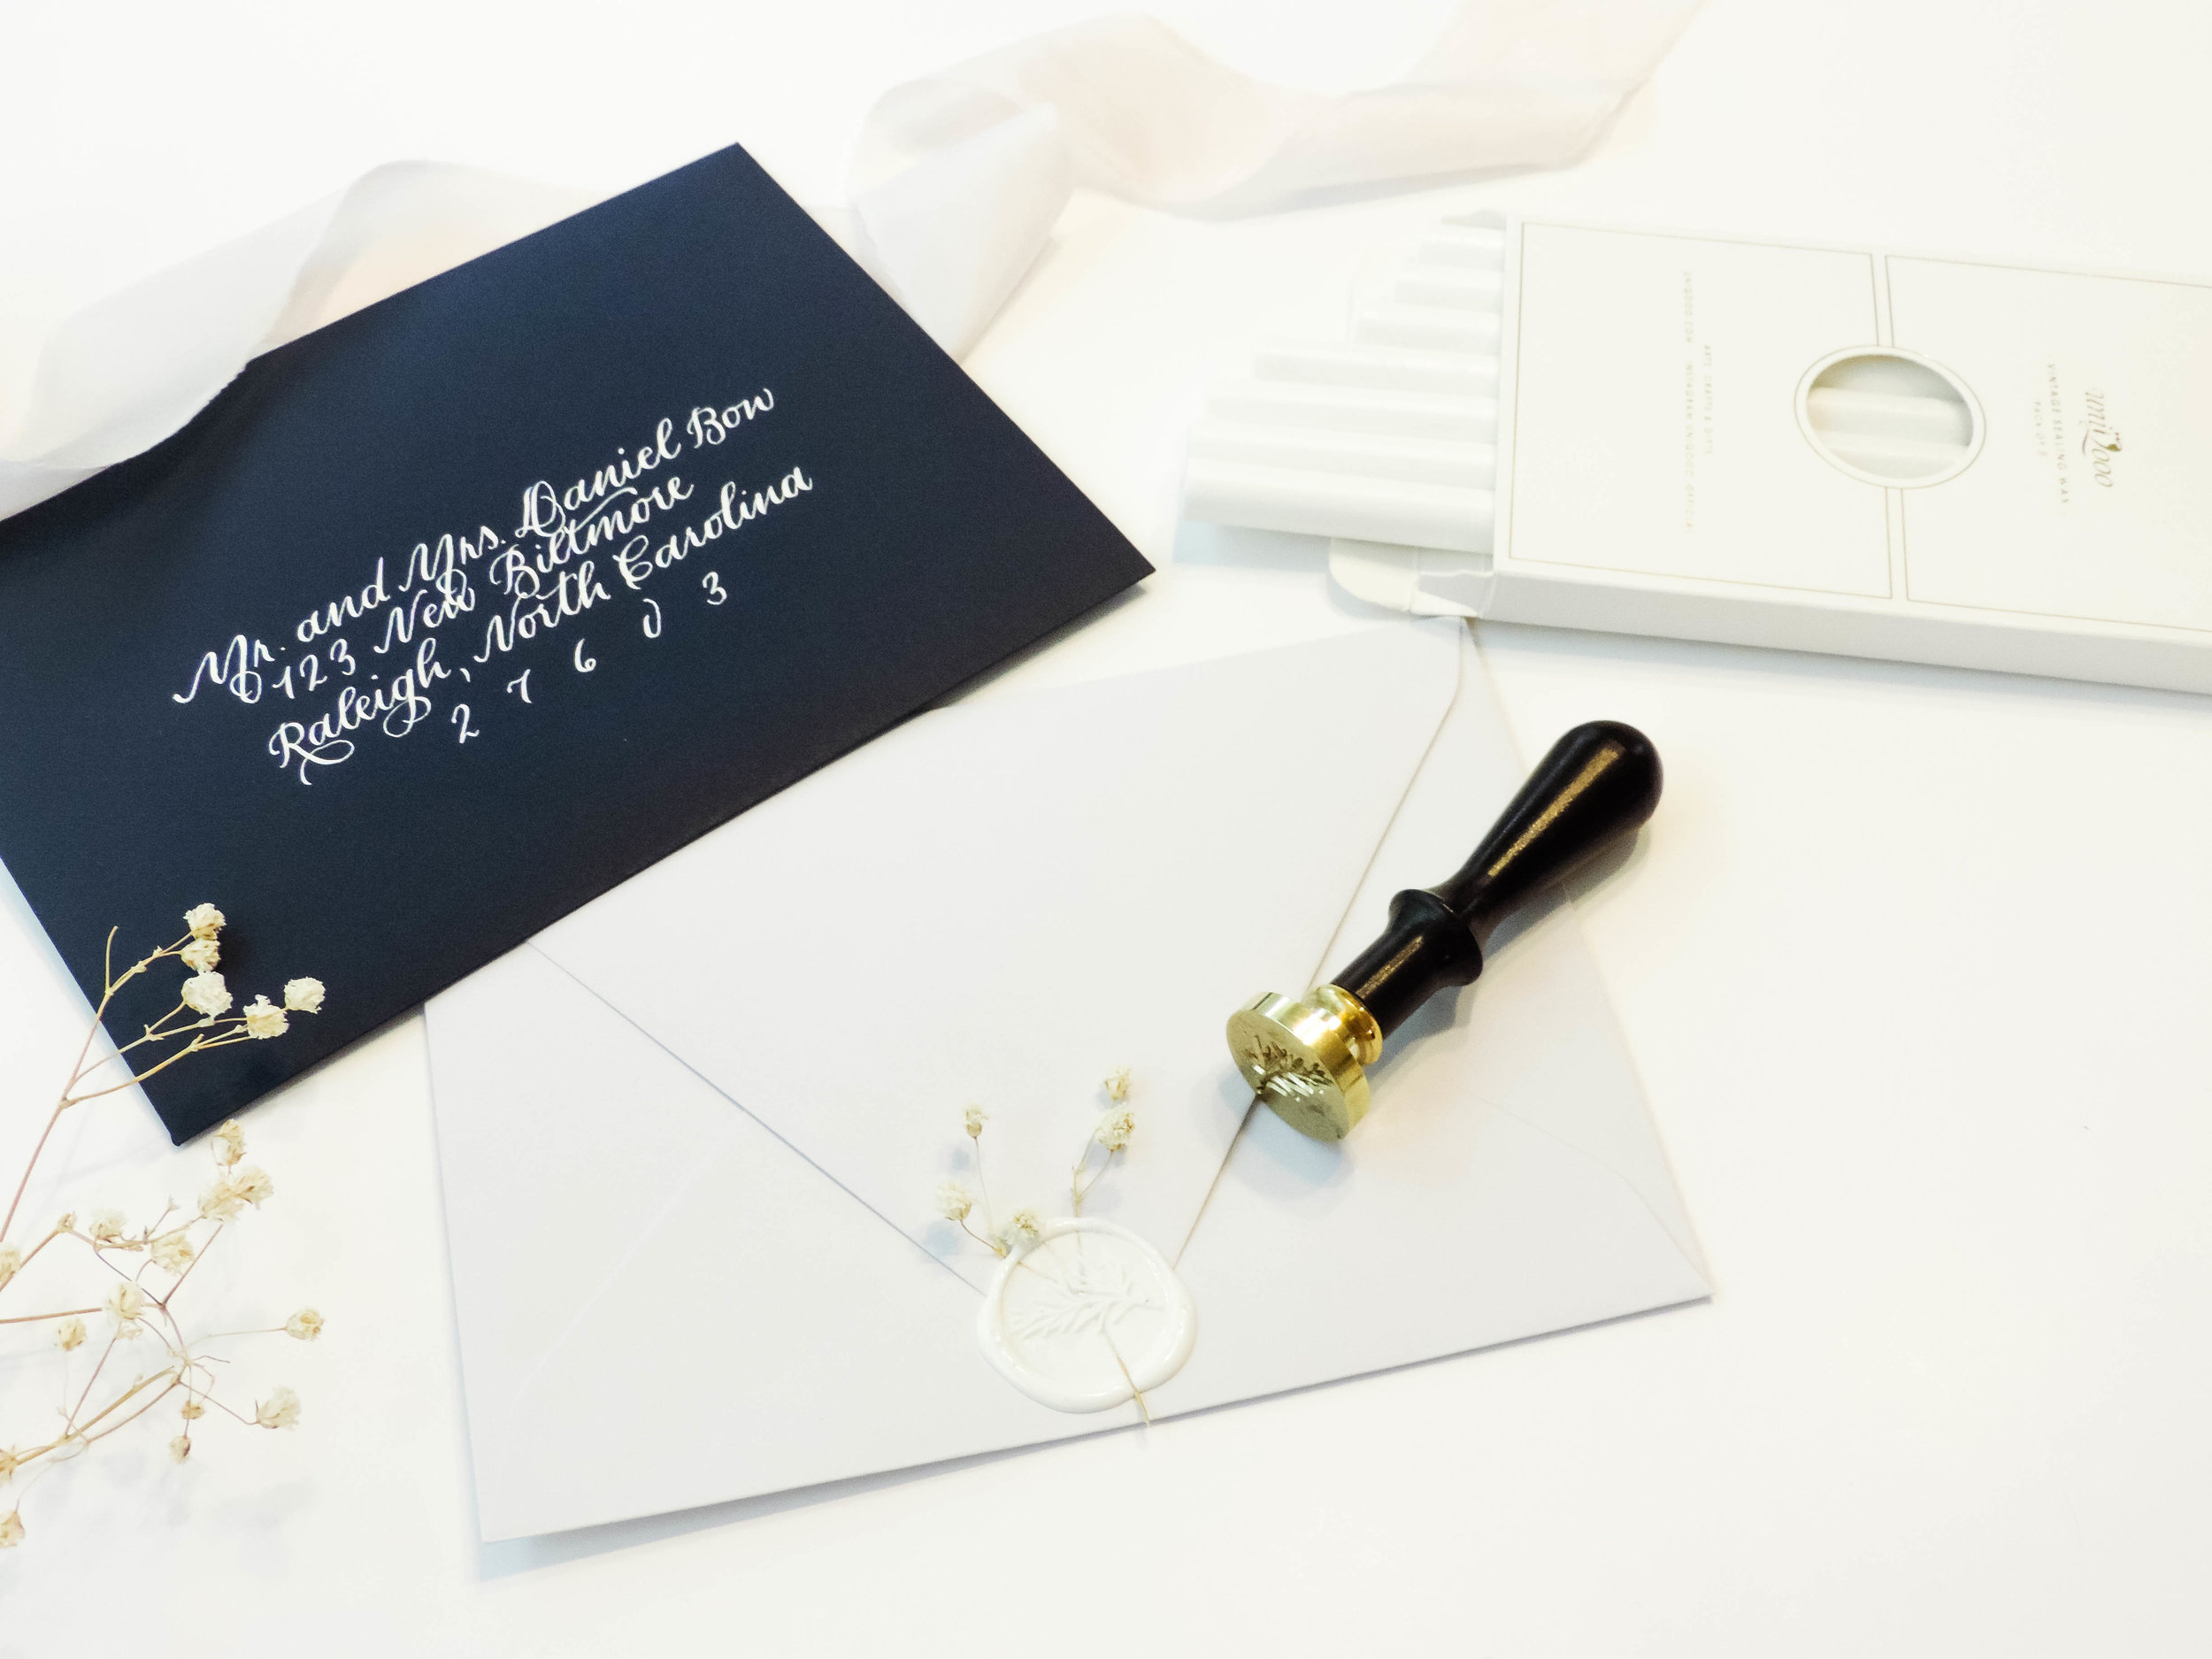 Pictured:  White Wax Sealing Sticks  and Botanical Wax Seal Stamp by Uniqooo